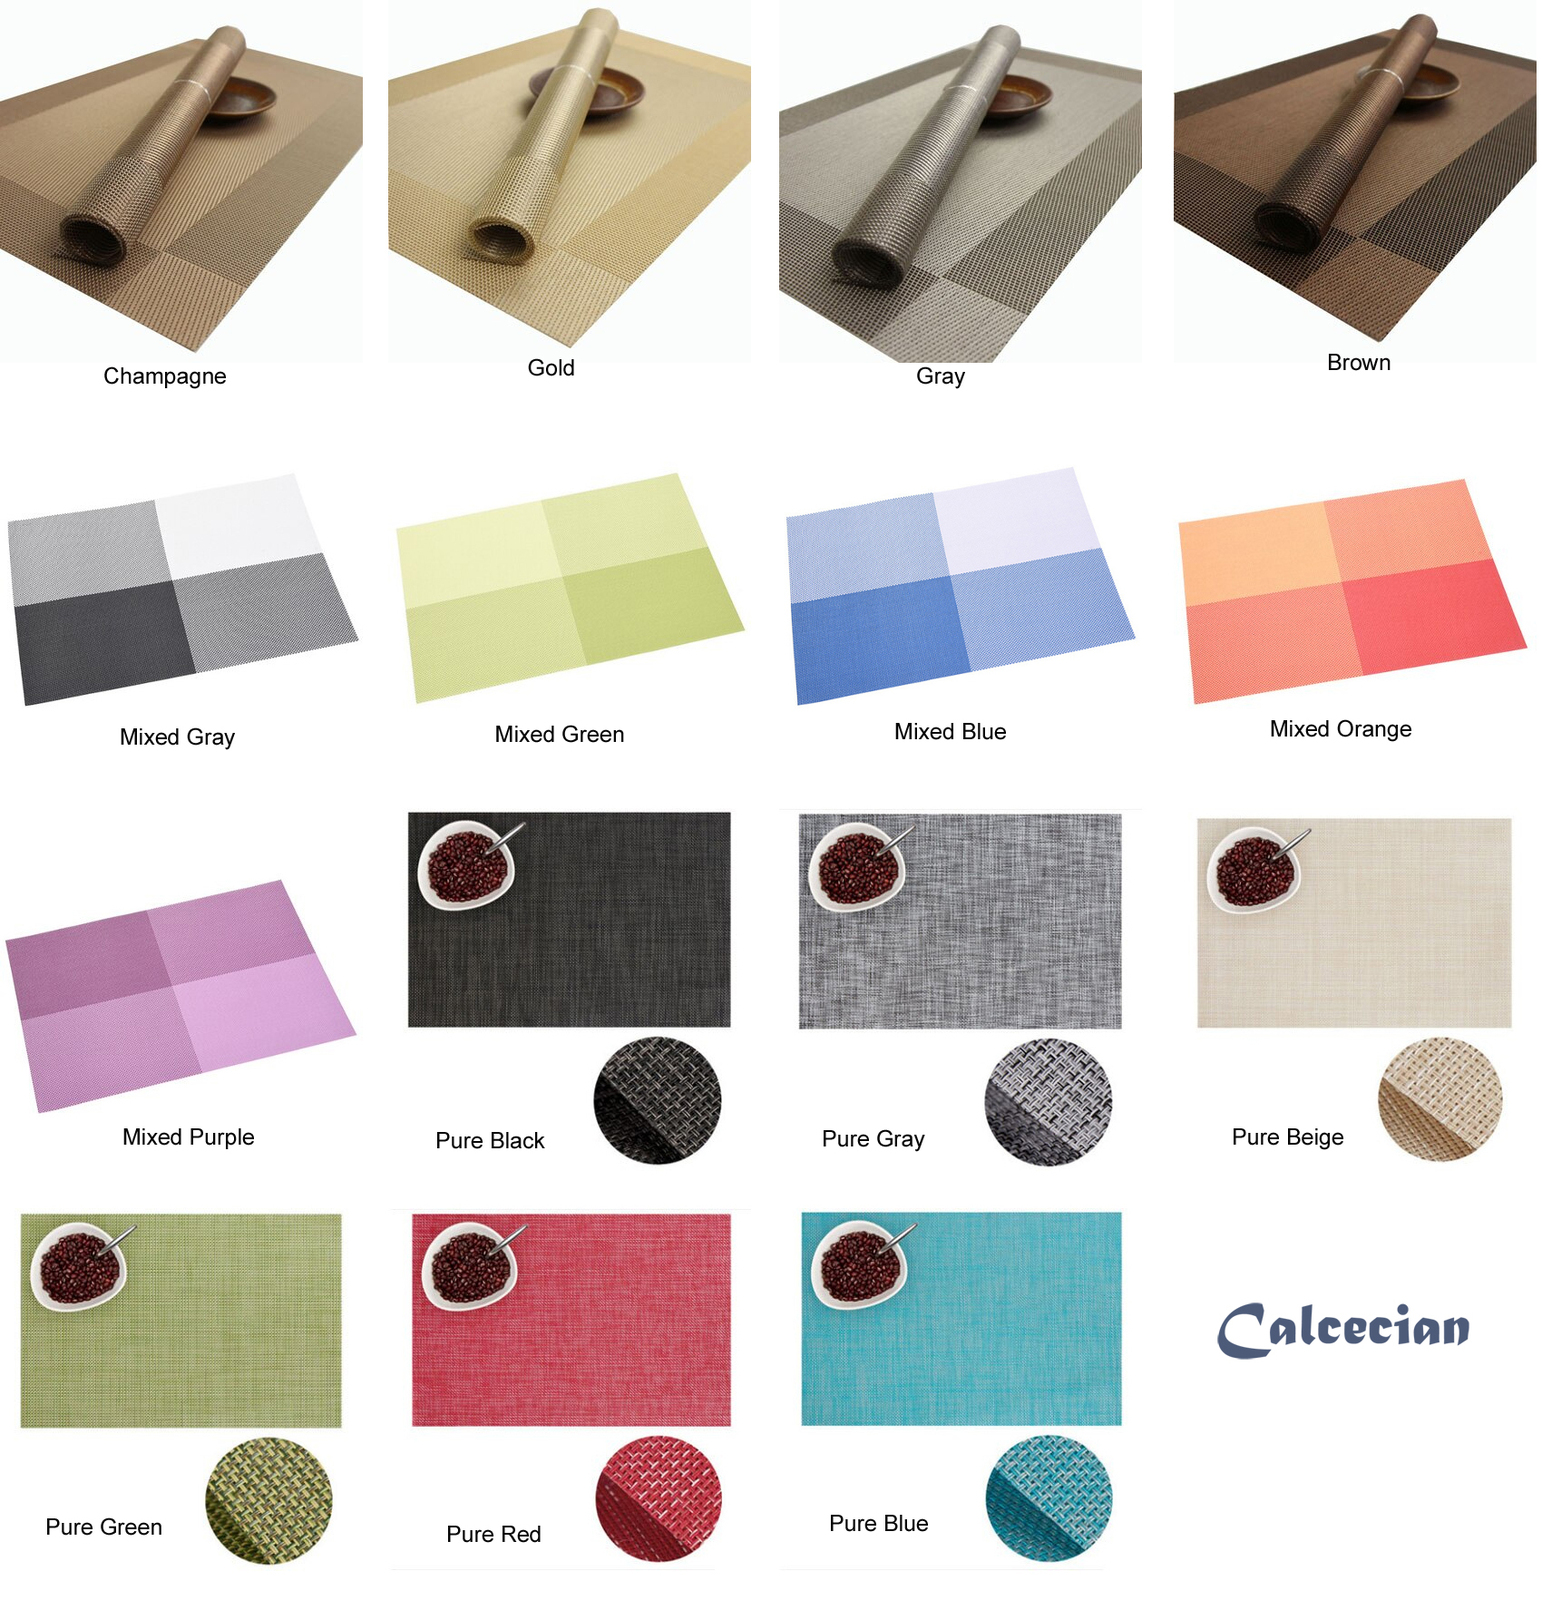 Placemats Washable Table Cloth Mat Tablemat Stain-Resistant Coaster Non-slip Pad - $7.08 - $19.78